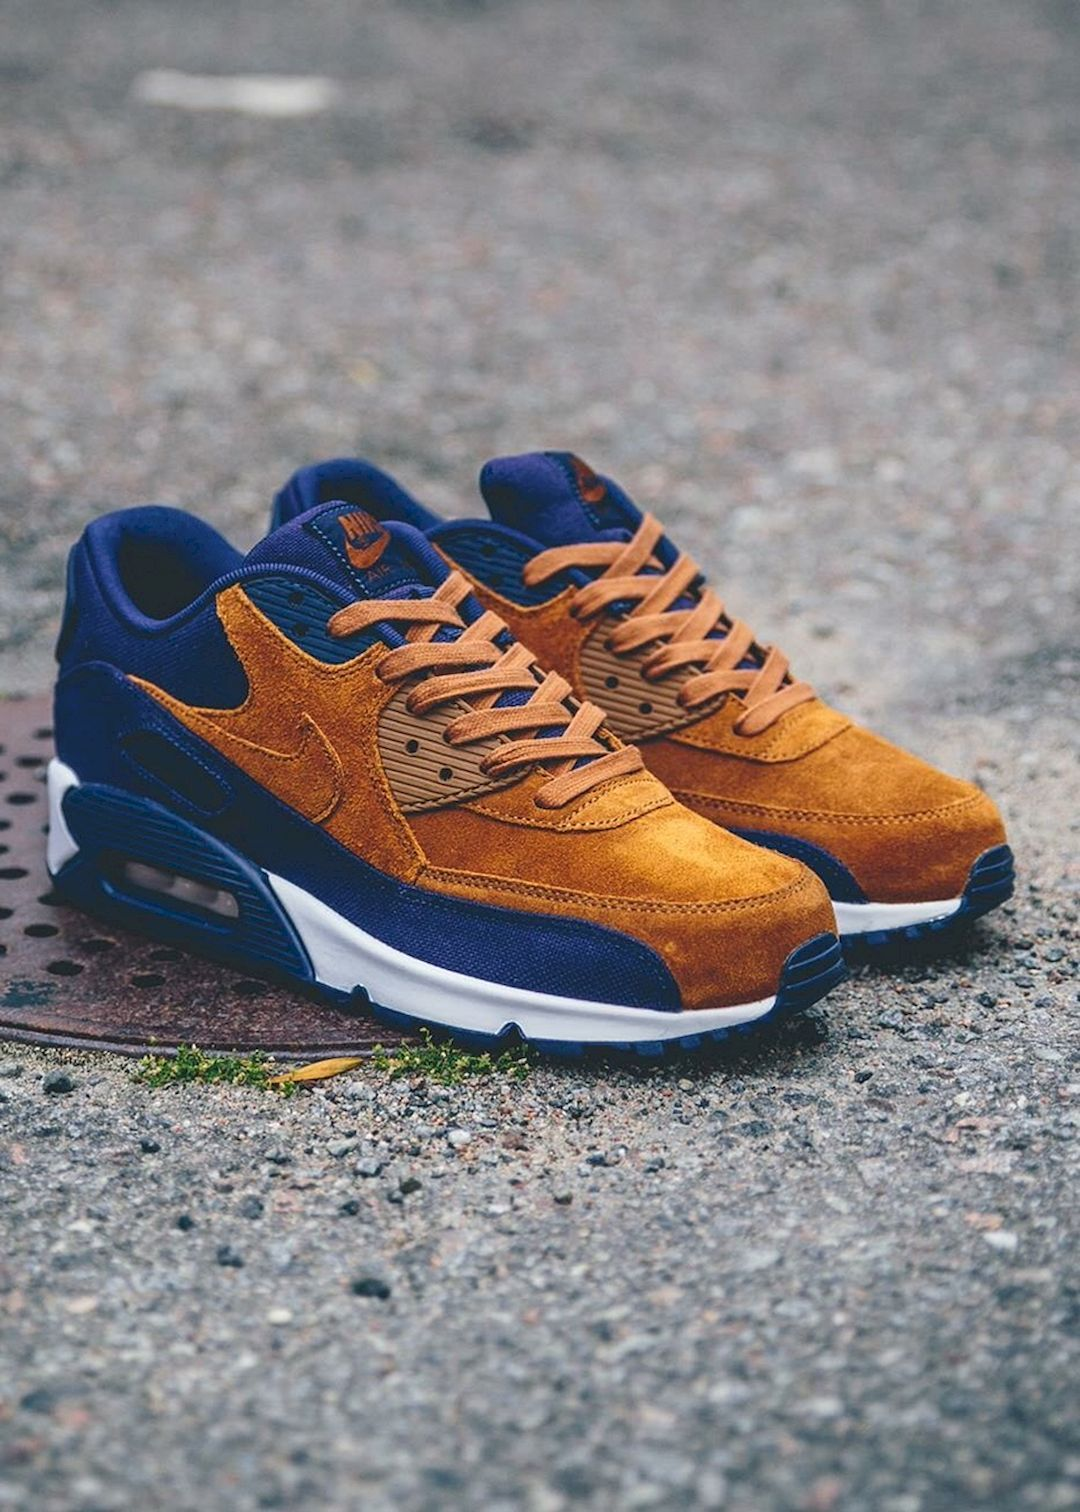 "948609744d Soleheaven Curated Collections on Instagram: ""Our latest addition to the  beautifully seasonal 'Bronze pack' is this; the Air Max 90 'Bronze', ..."